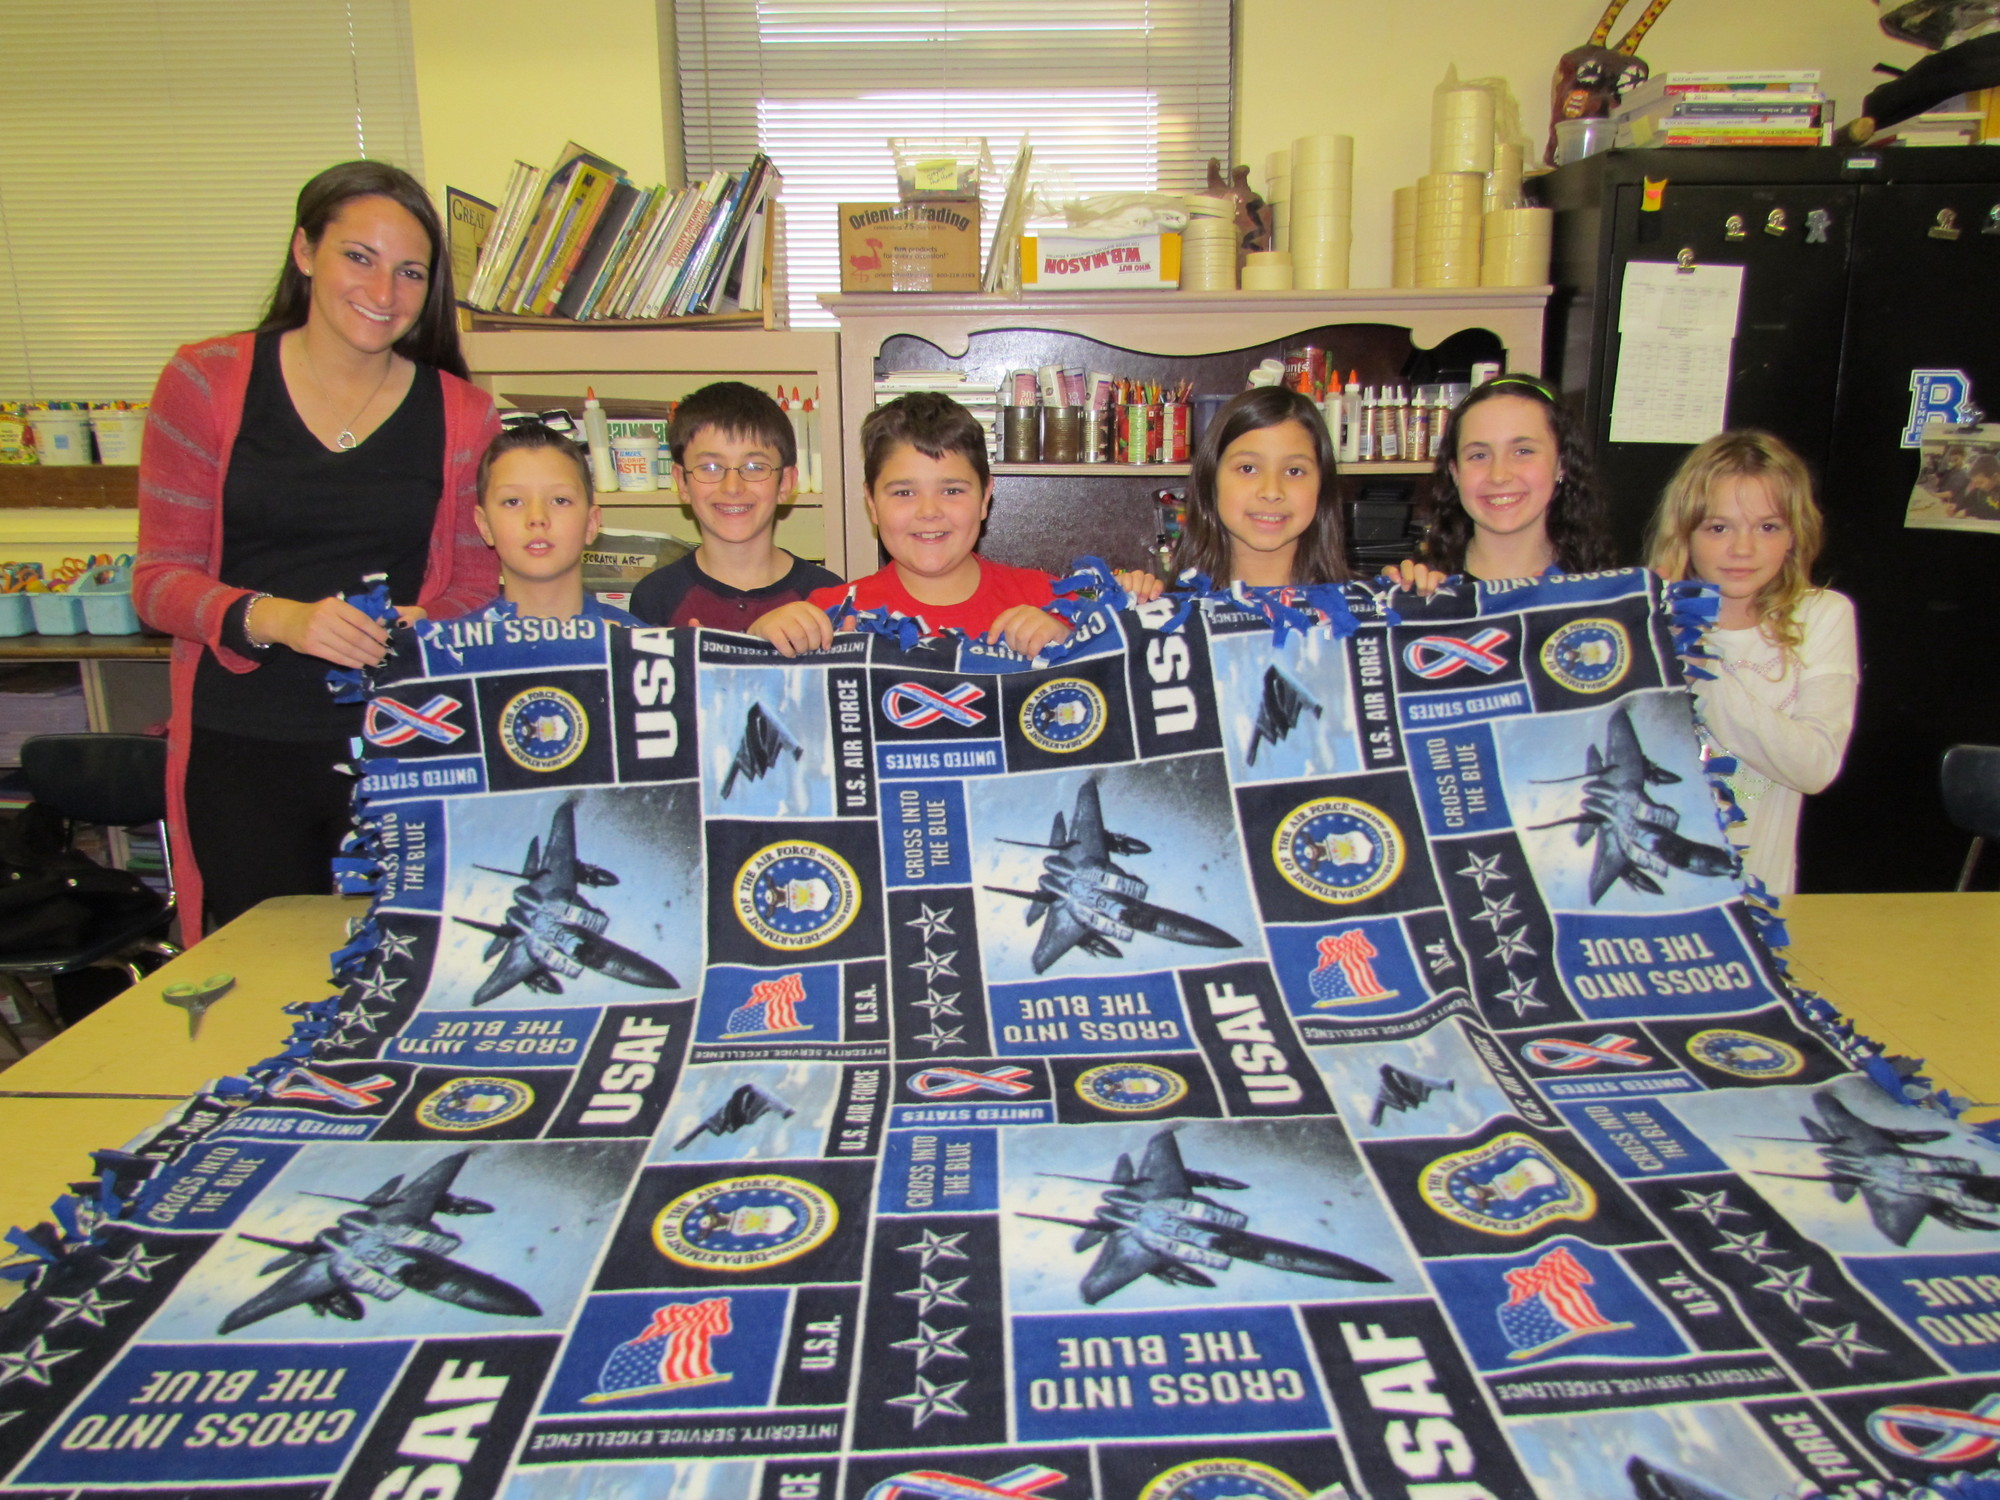 Jillian Leibowitz, left, whose mother, Jody, is a fourth-grade teacher at Winthrop Avenue Elementary School in Bellmore, helped Evan Collins, Andrew DiFusco, Ryan Kender, Emma Tiongson, Jessica Nachamie and Anna Bolles, from left, and other students make blankets for soldiers.